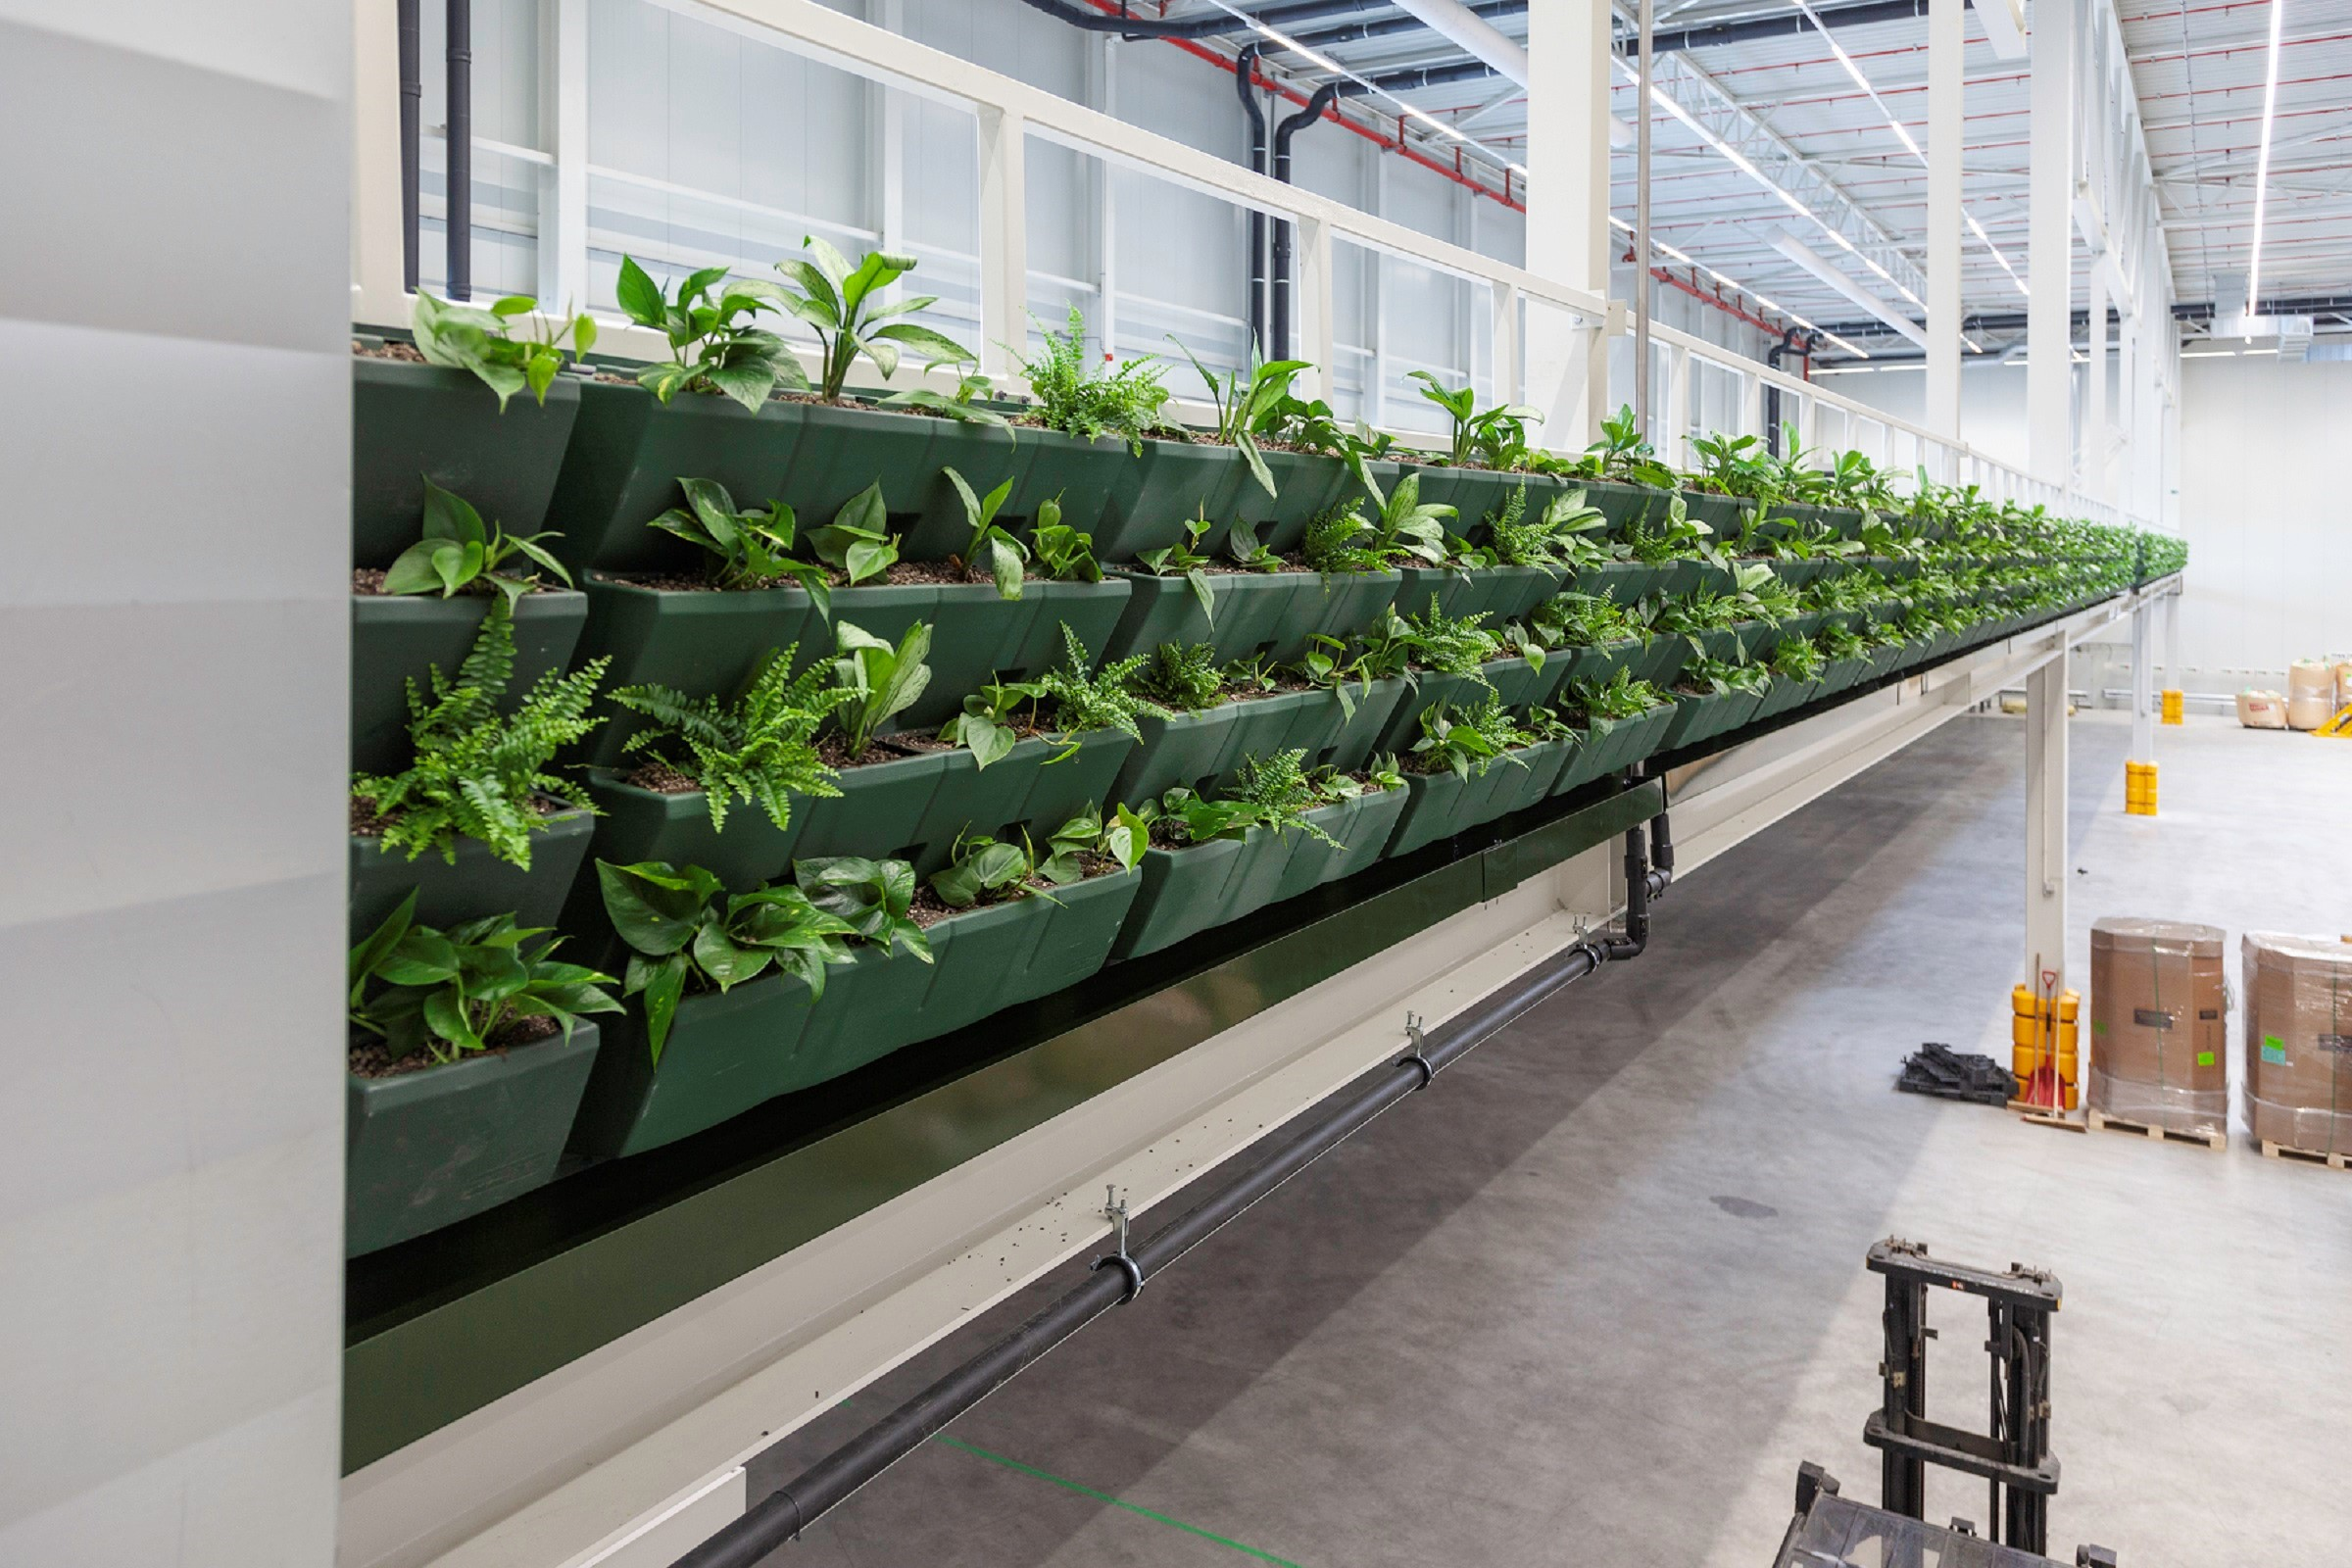 Prologis feature WELL Building Standard plants